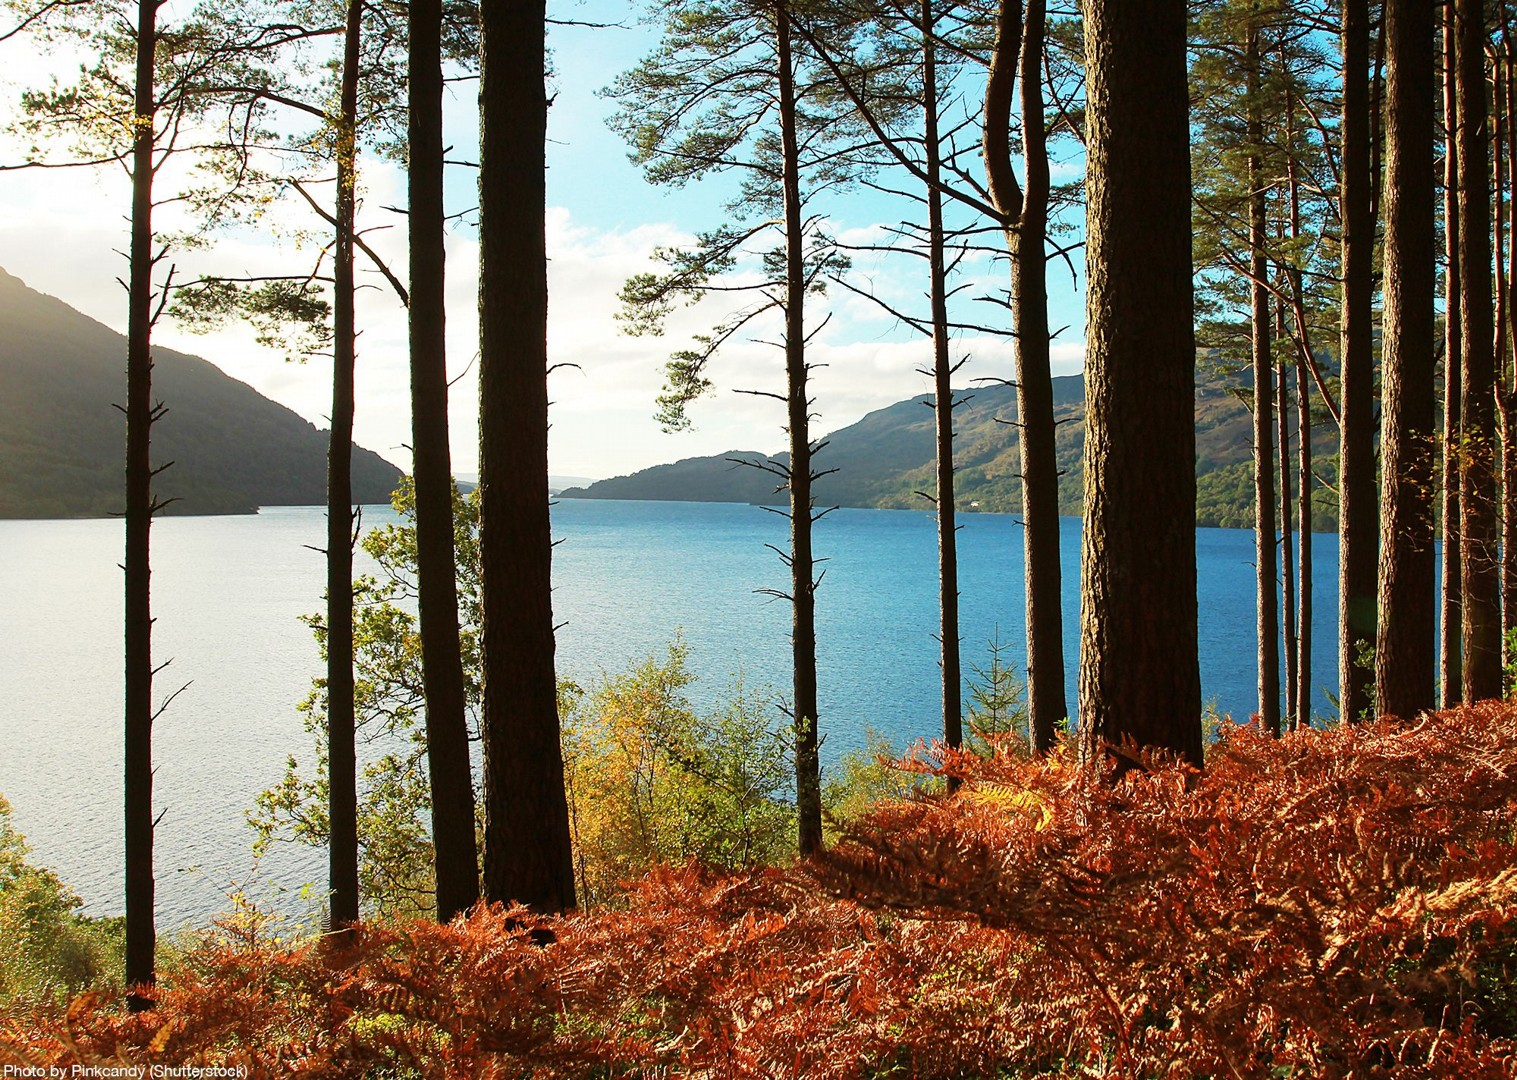 lochs-and-glens-loch-lomond-scotland-bike-holiday-tour-skedaddle.jpg - UK - Scotland - Lochs and Glens - Self-Guided Leisure Cycling Holiday - Leisure Cycling